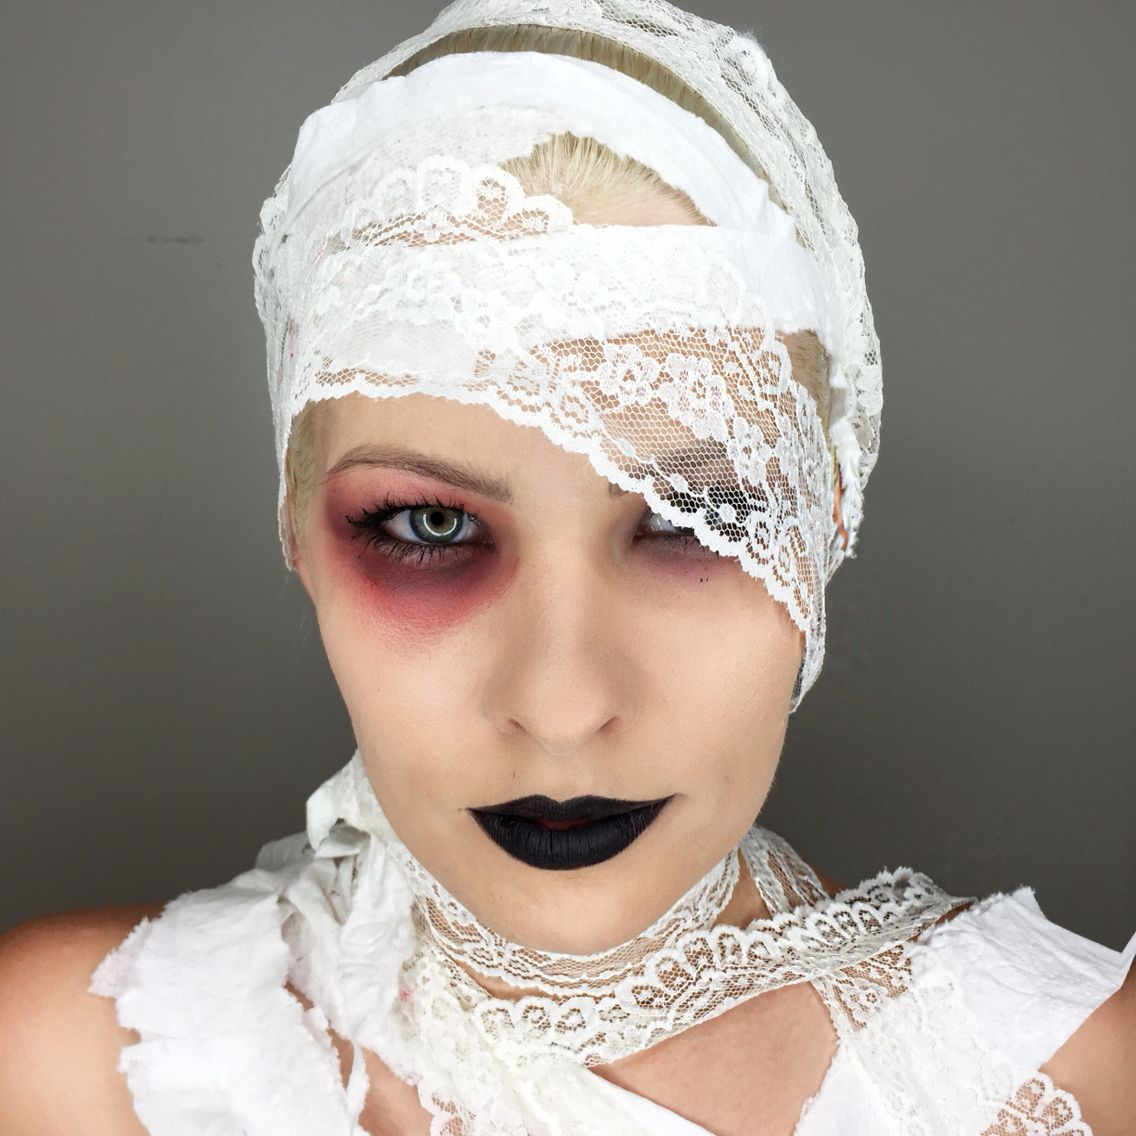 Lace mummy makeup for Halloween. Original costume idea! Easy ...